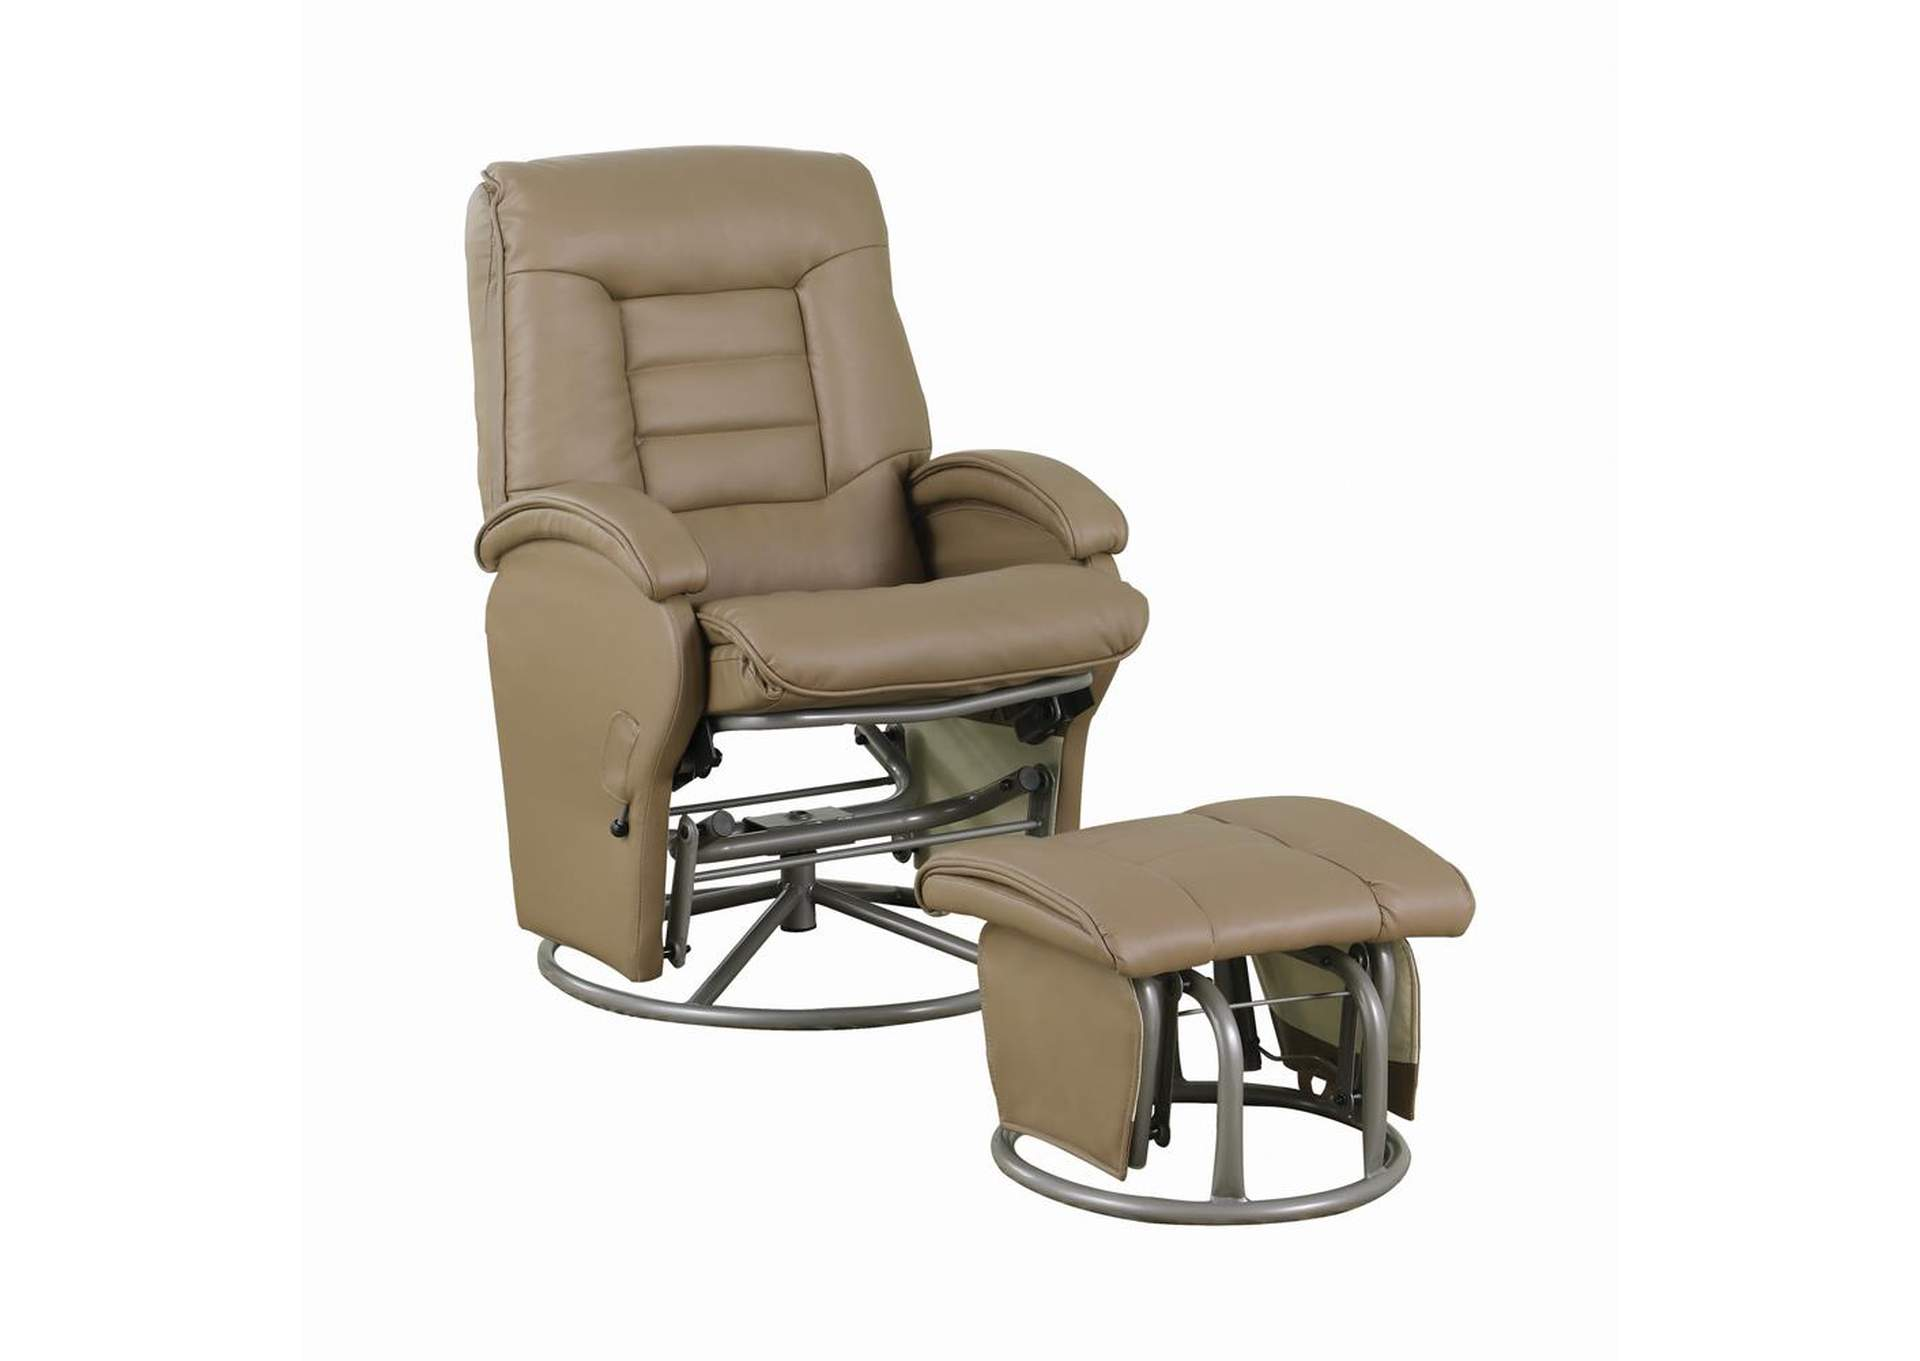 Beaver Casual Bone Faux Leather Vinyl Reclining Glider W/ Matching Ottoman,Coaster Furniture